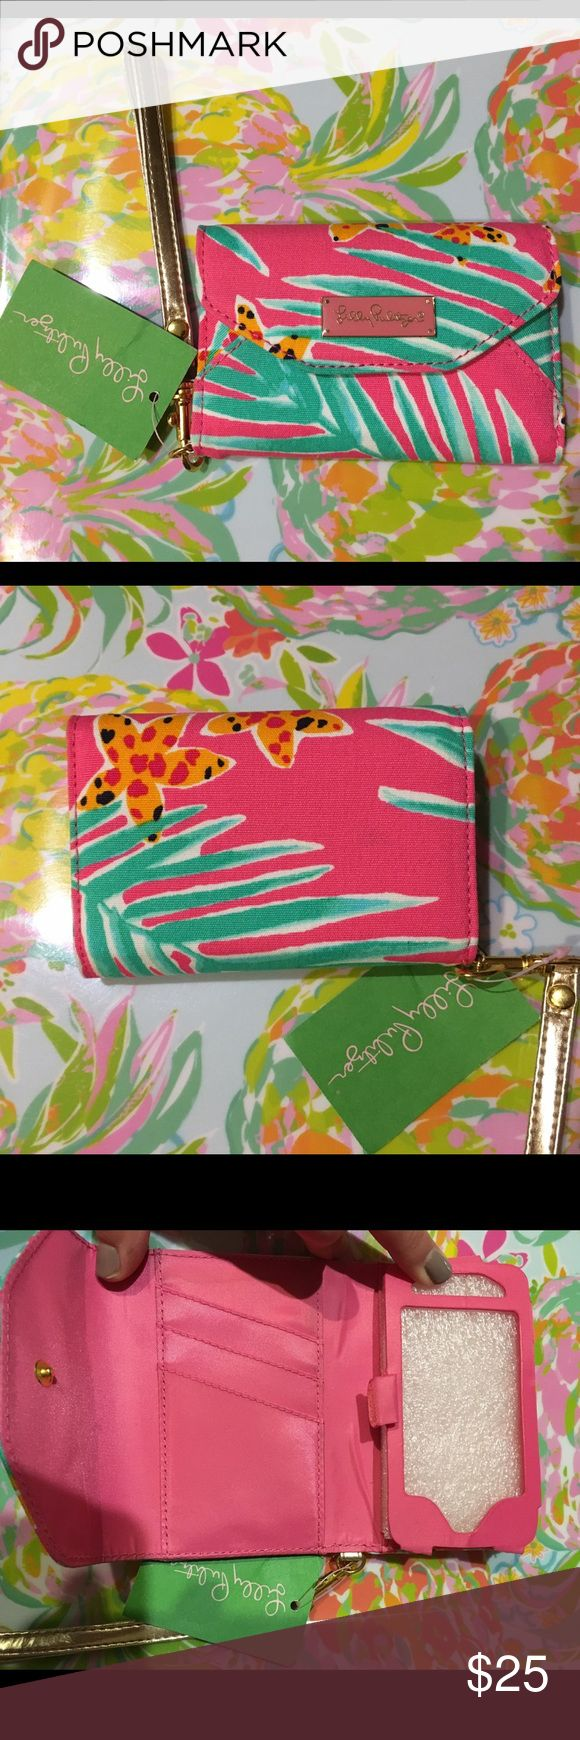 Lilly Pulitzer Ring Me Up Wristlet NWT Lilly Pulitzer wristlet with credit card slots and room for phone. Not sure which size phone, thinking iPhone 4 or non-Apple phone. Cute as just a wristlet even if you don't use the phone slot! ☺️🌴 Wristlet is approx. 5 inches long. Lilly Pulitzer Bags Clutches & Wristlets